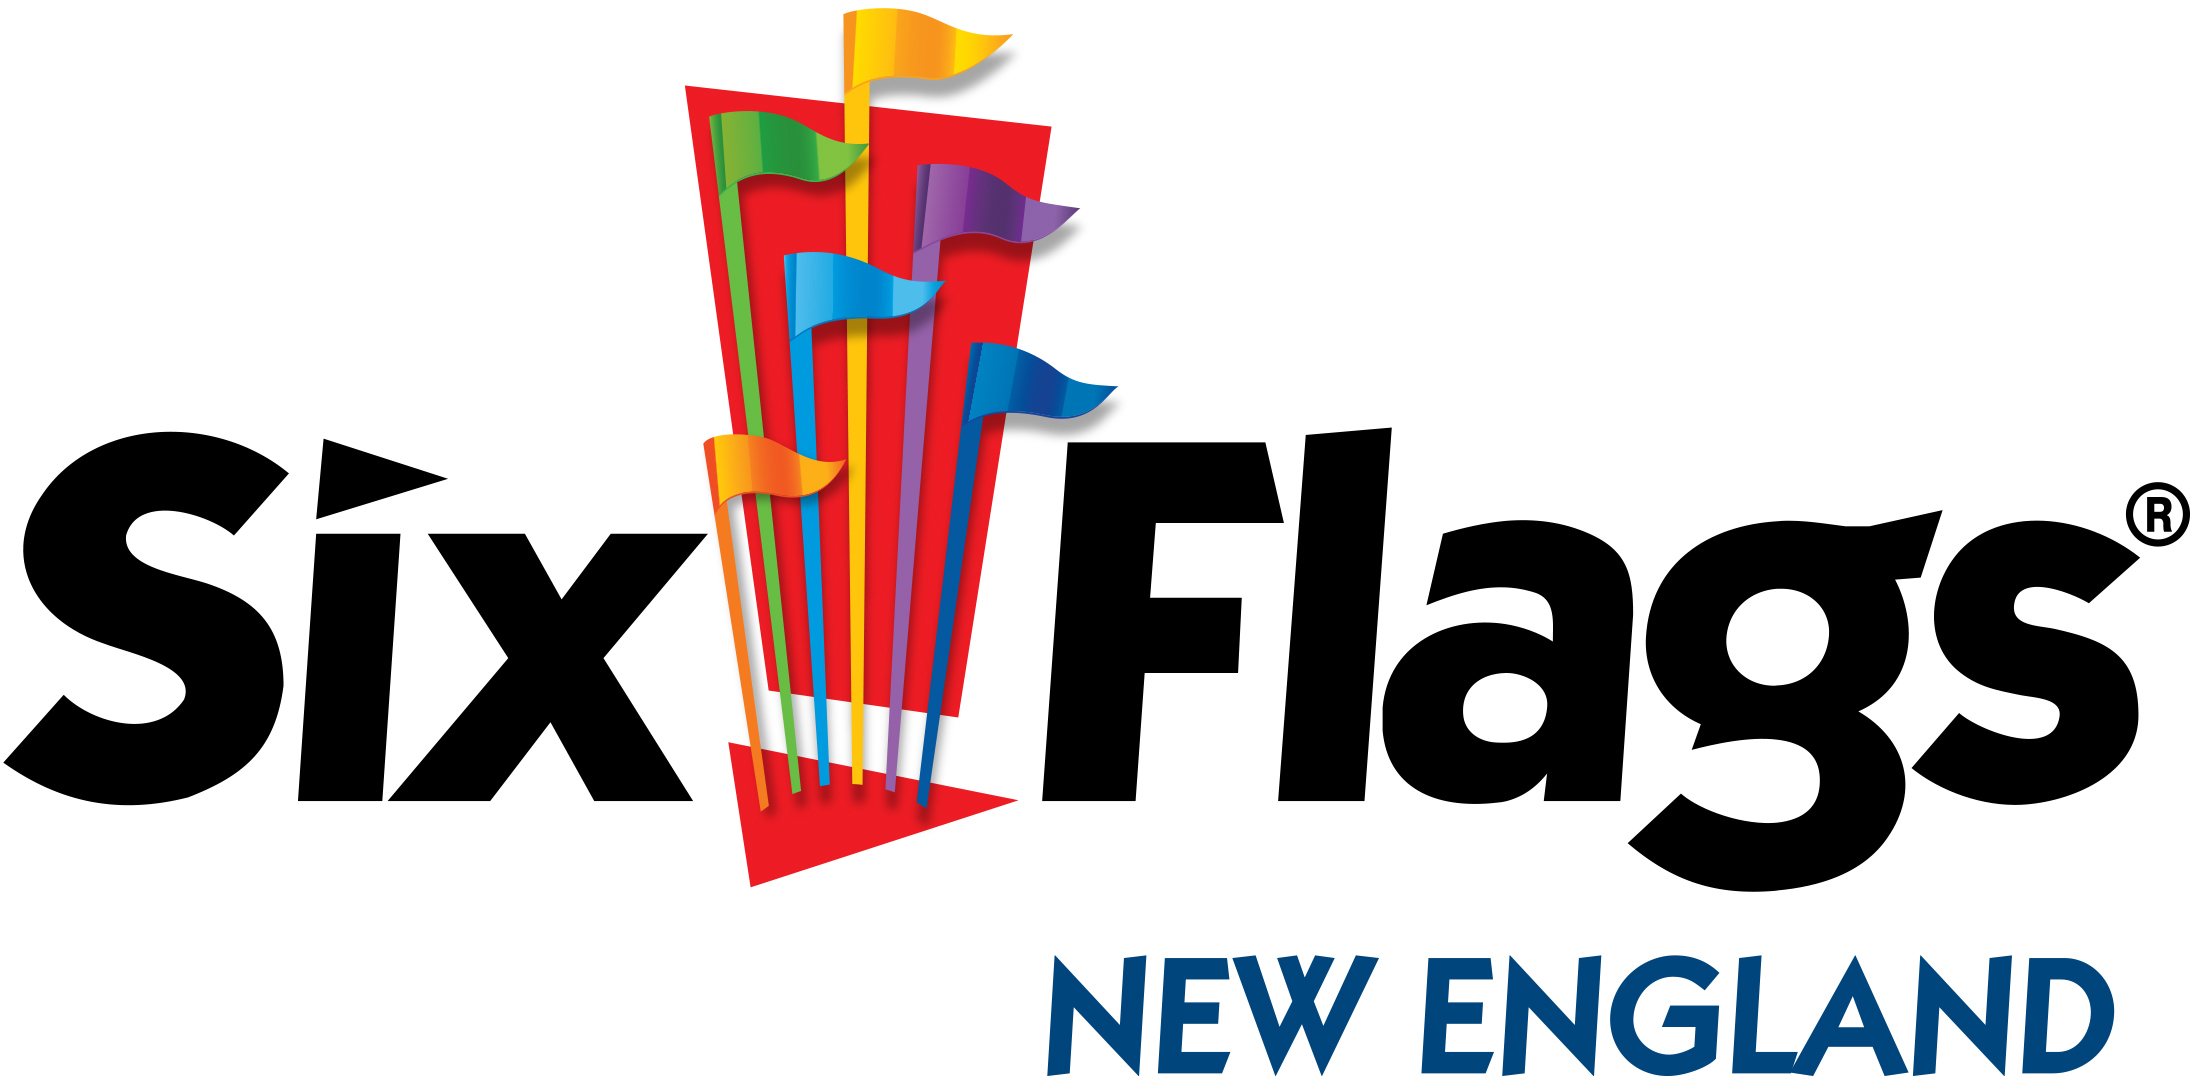 389489bb6a4ddb DC Super-Villain HARLEY QUINN Spinsanity Now Open at Six Flags New England  | Business Wire